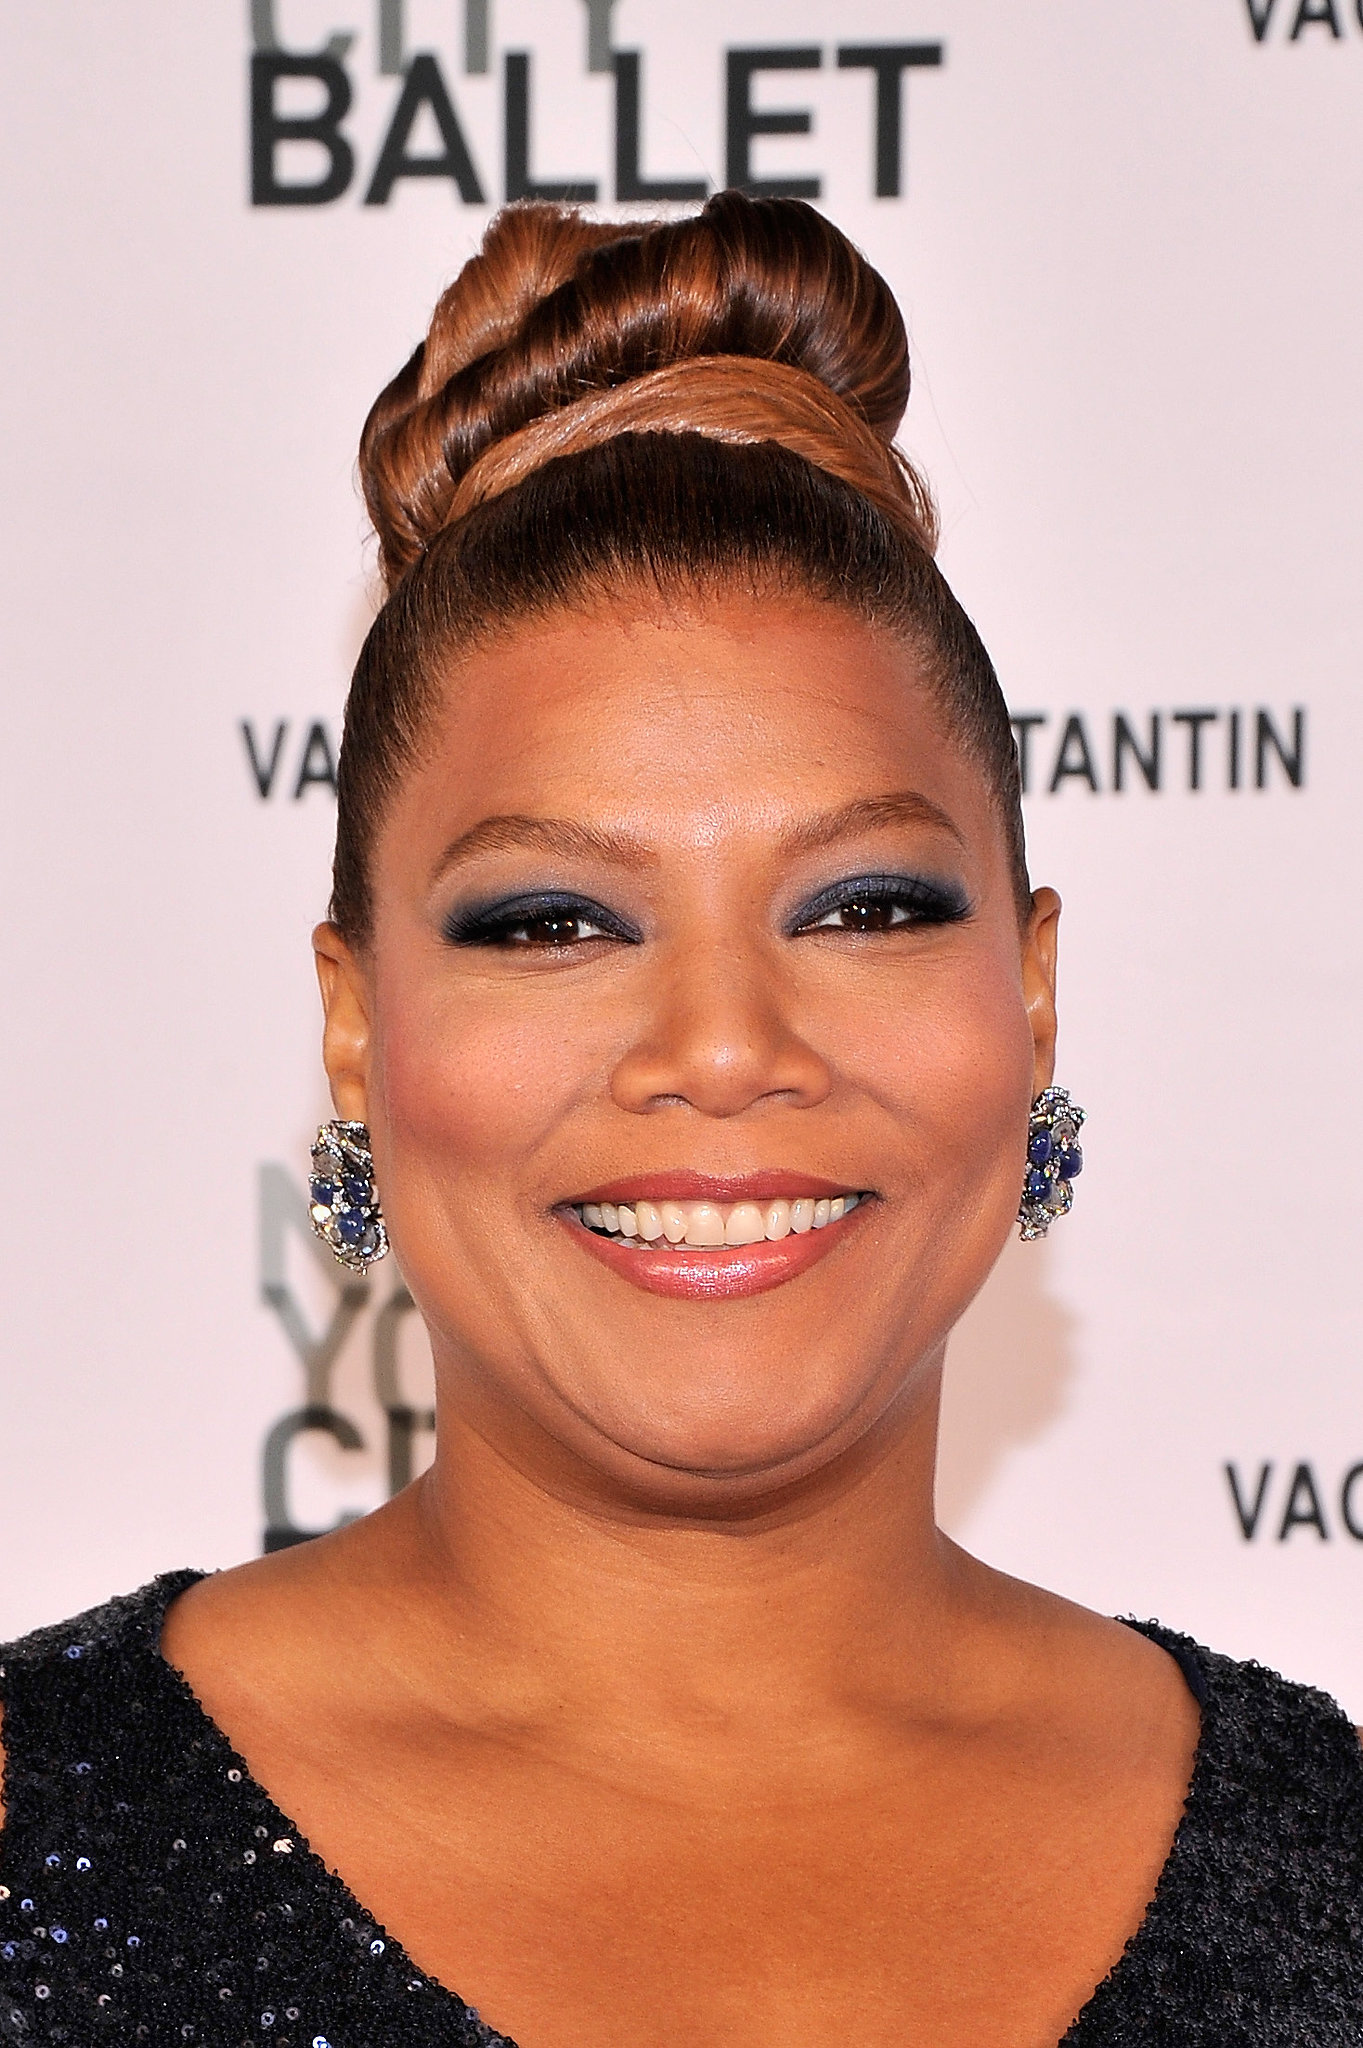 This topknot on Queen Latifah showcased her color job nicely.